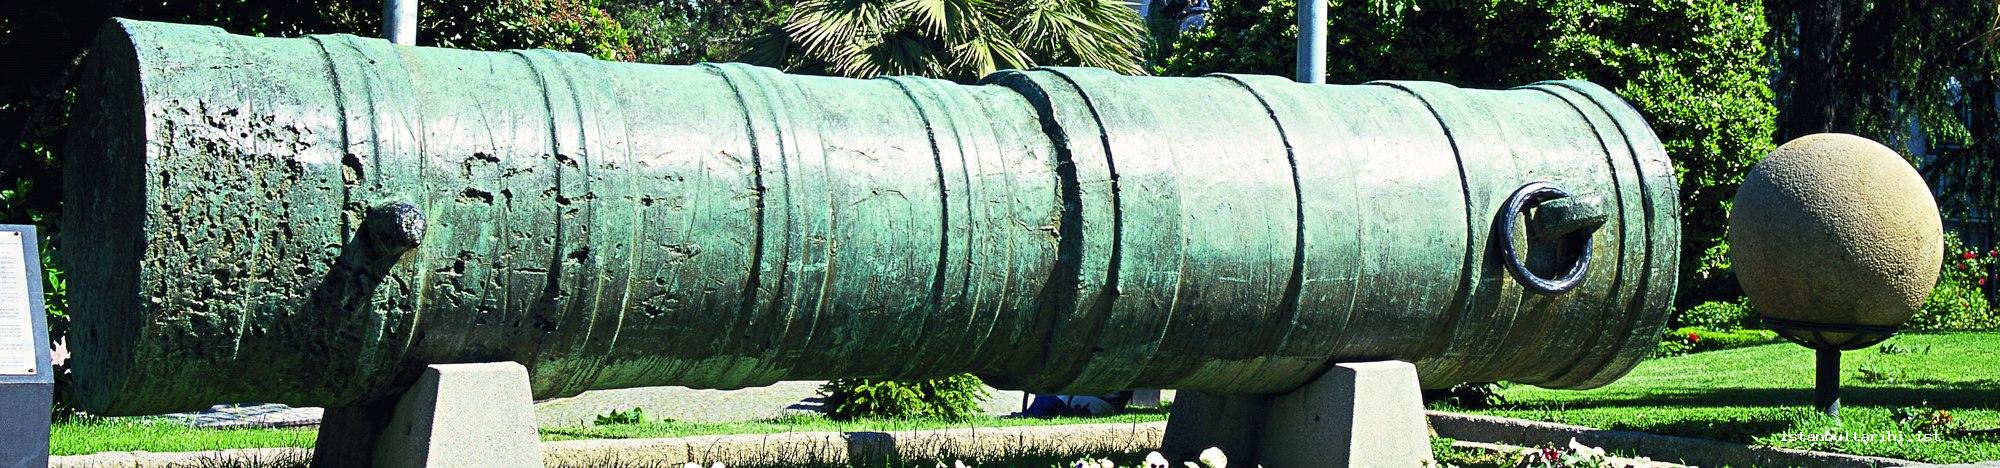 6- One of the cannons used in the siege of Istanbul and stone cannon balls (Military Museum) A